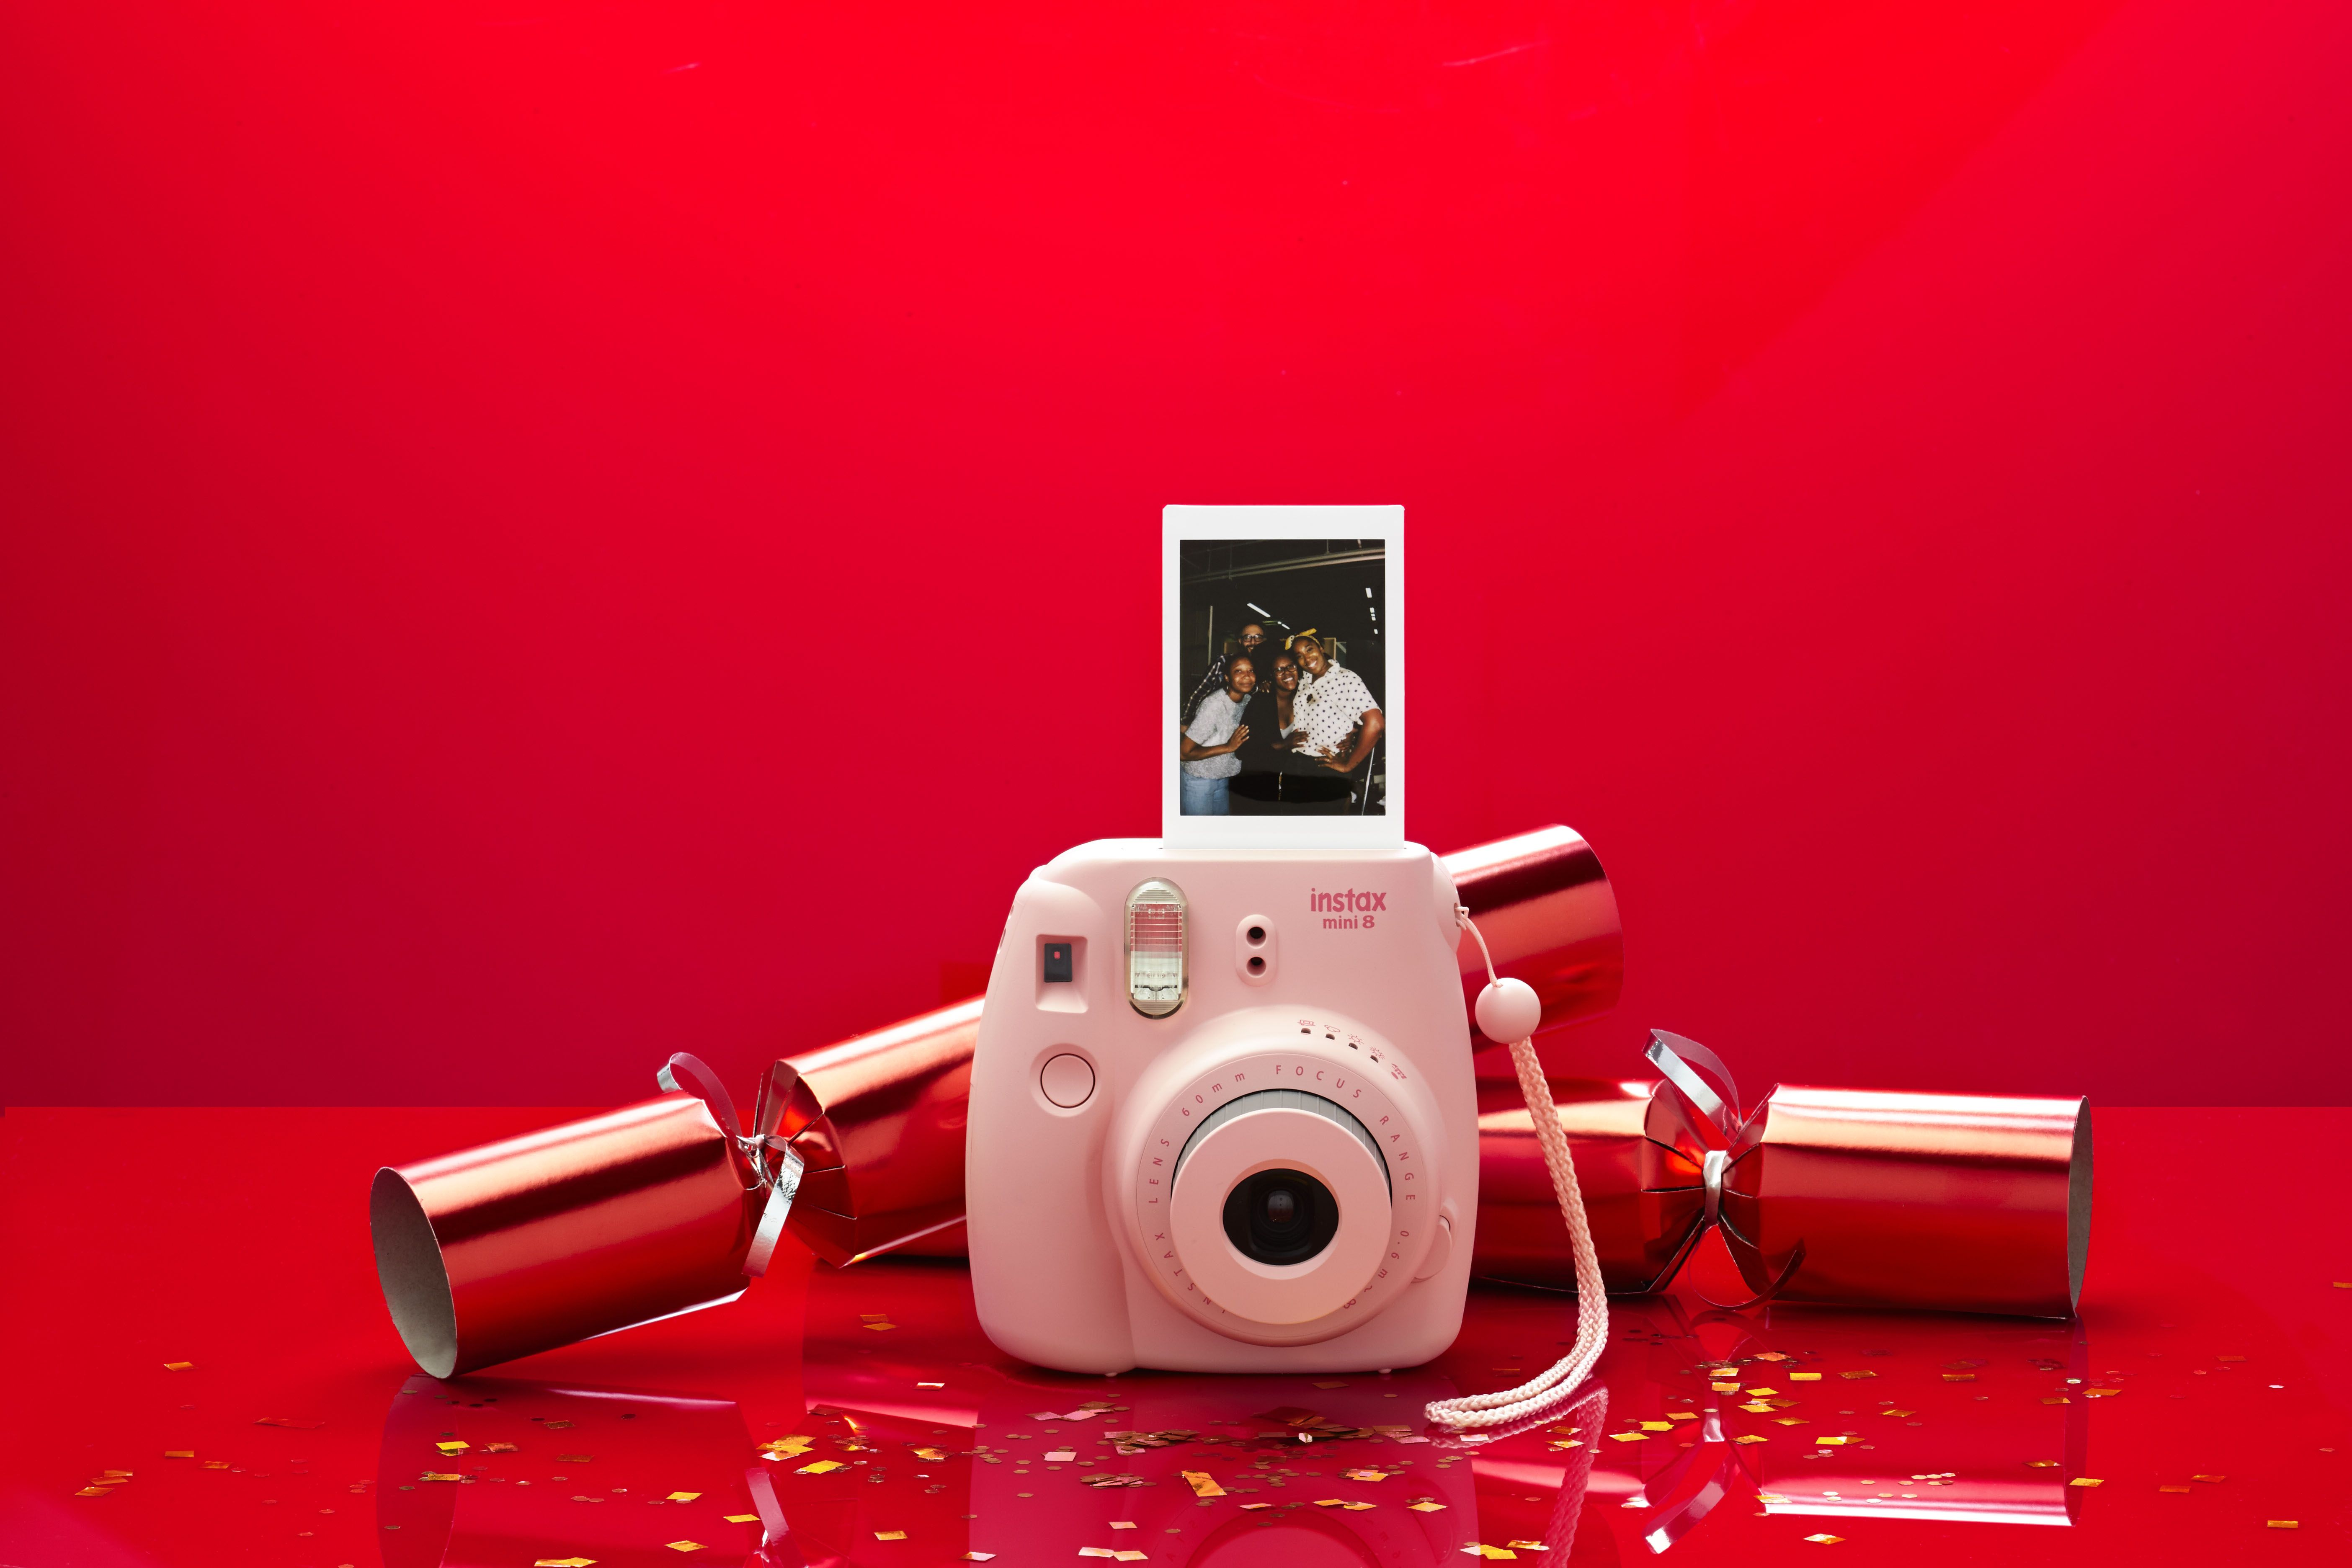 Instax Mini 8 Camera in pink perfect to capture the